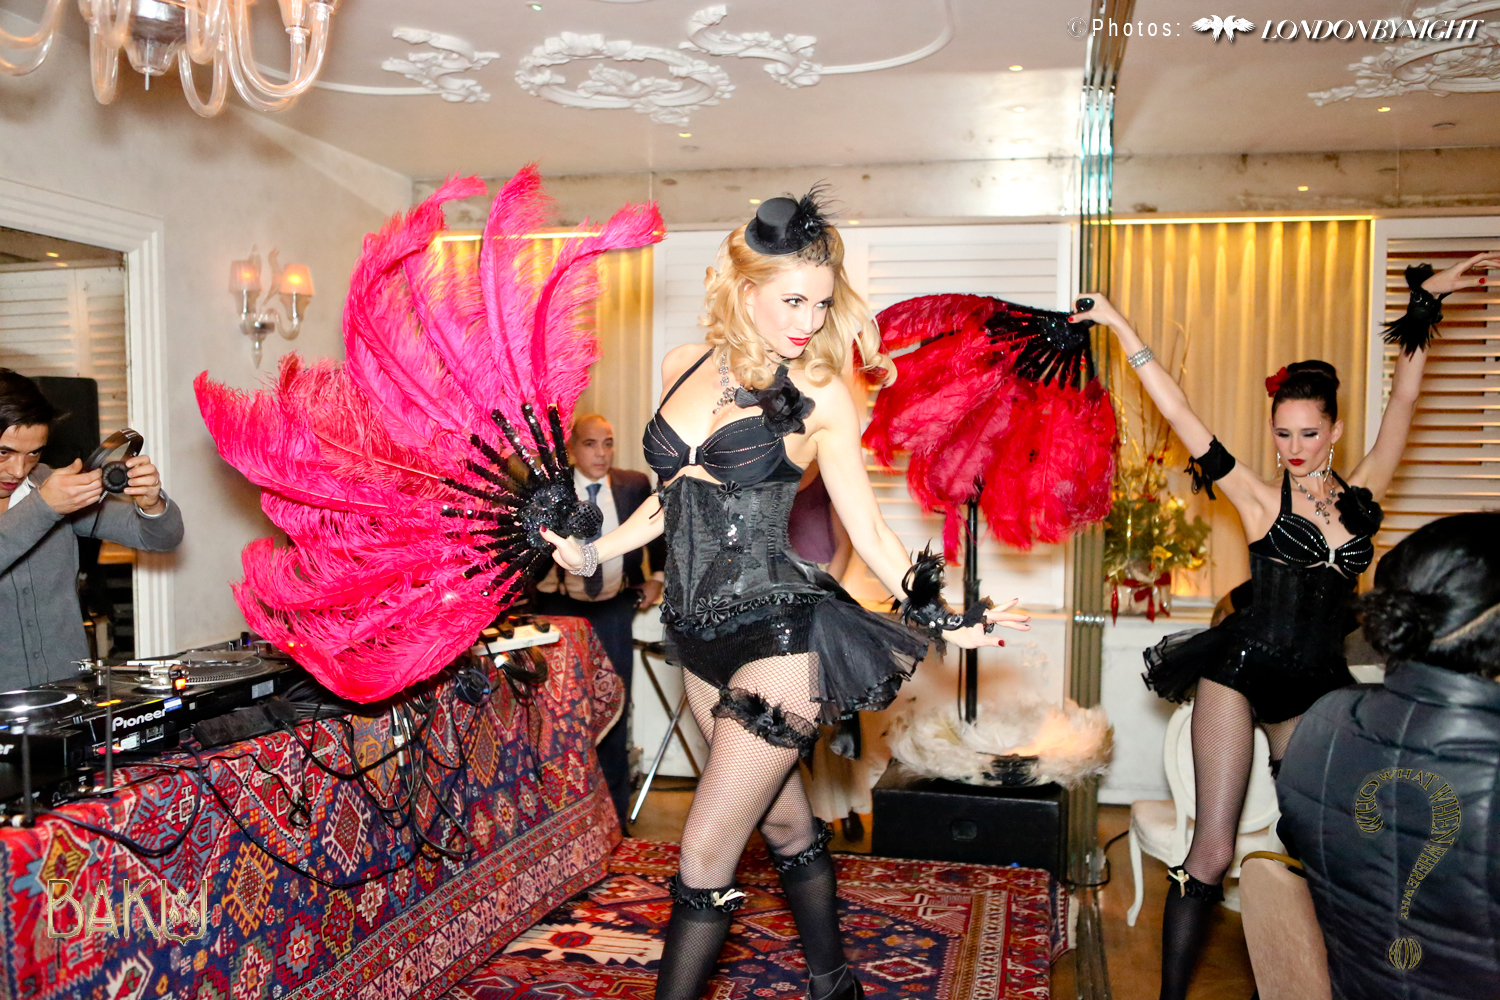 2012 11 30 Baku_ jimmy de paris1240.jpg